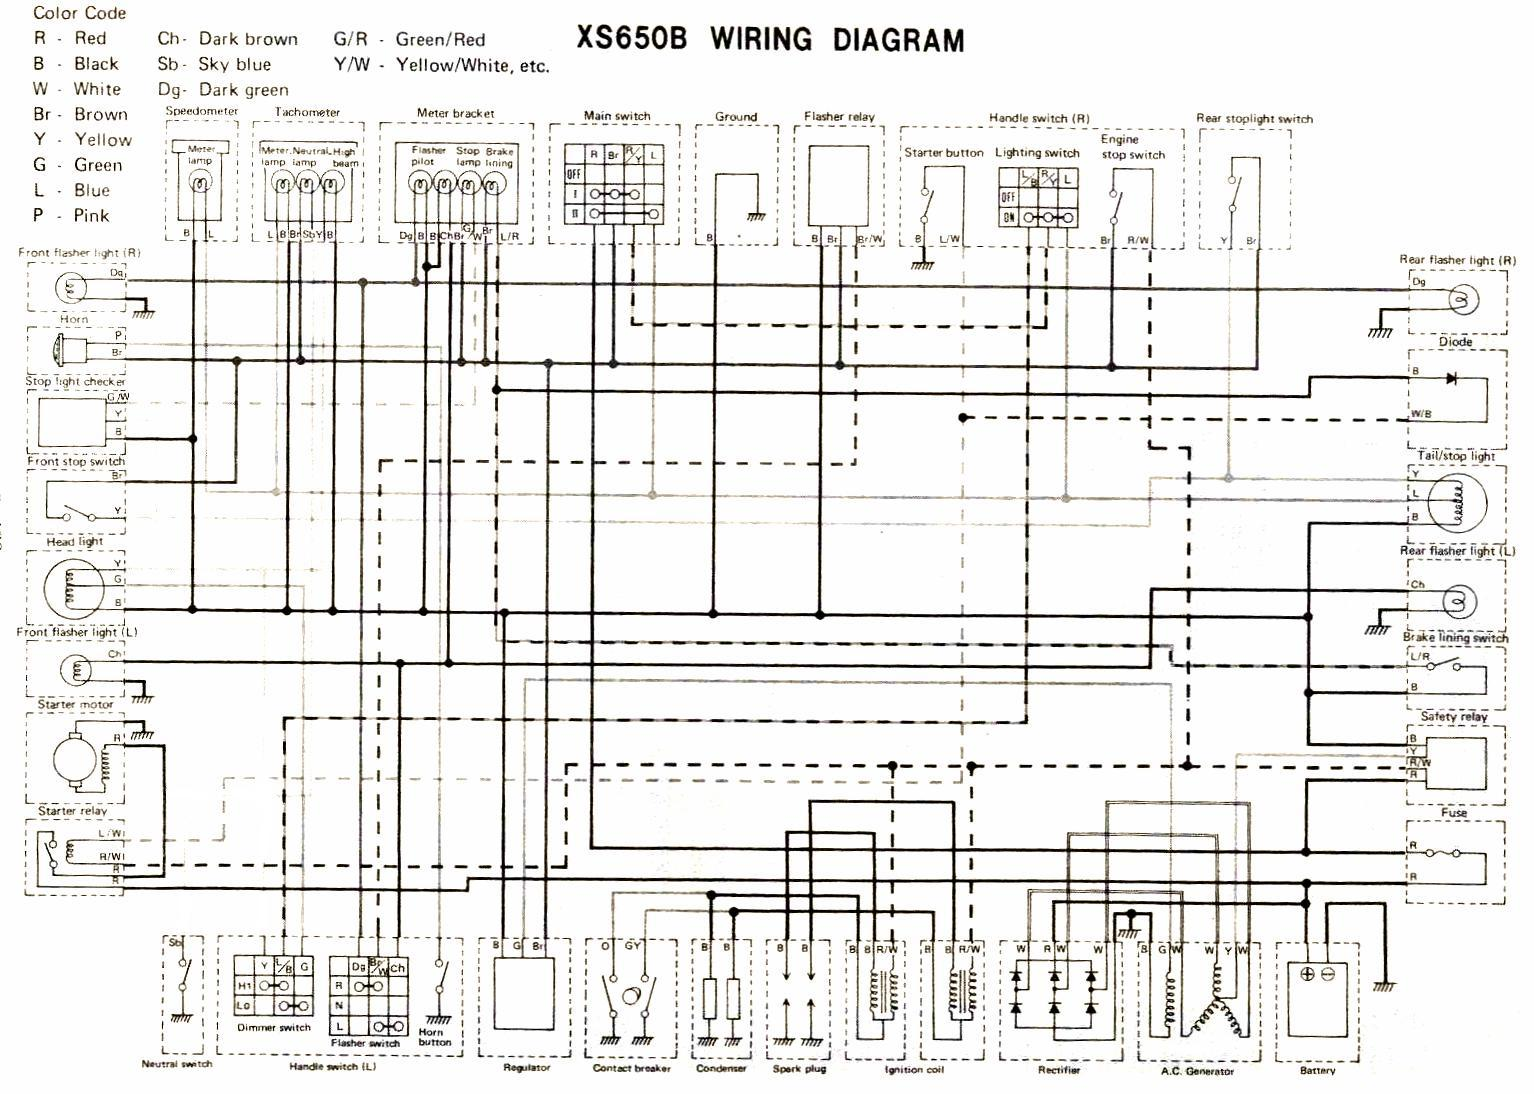 75XS650B wiring diagrams yamaha v star 650 wiring diagram at aneh.co